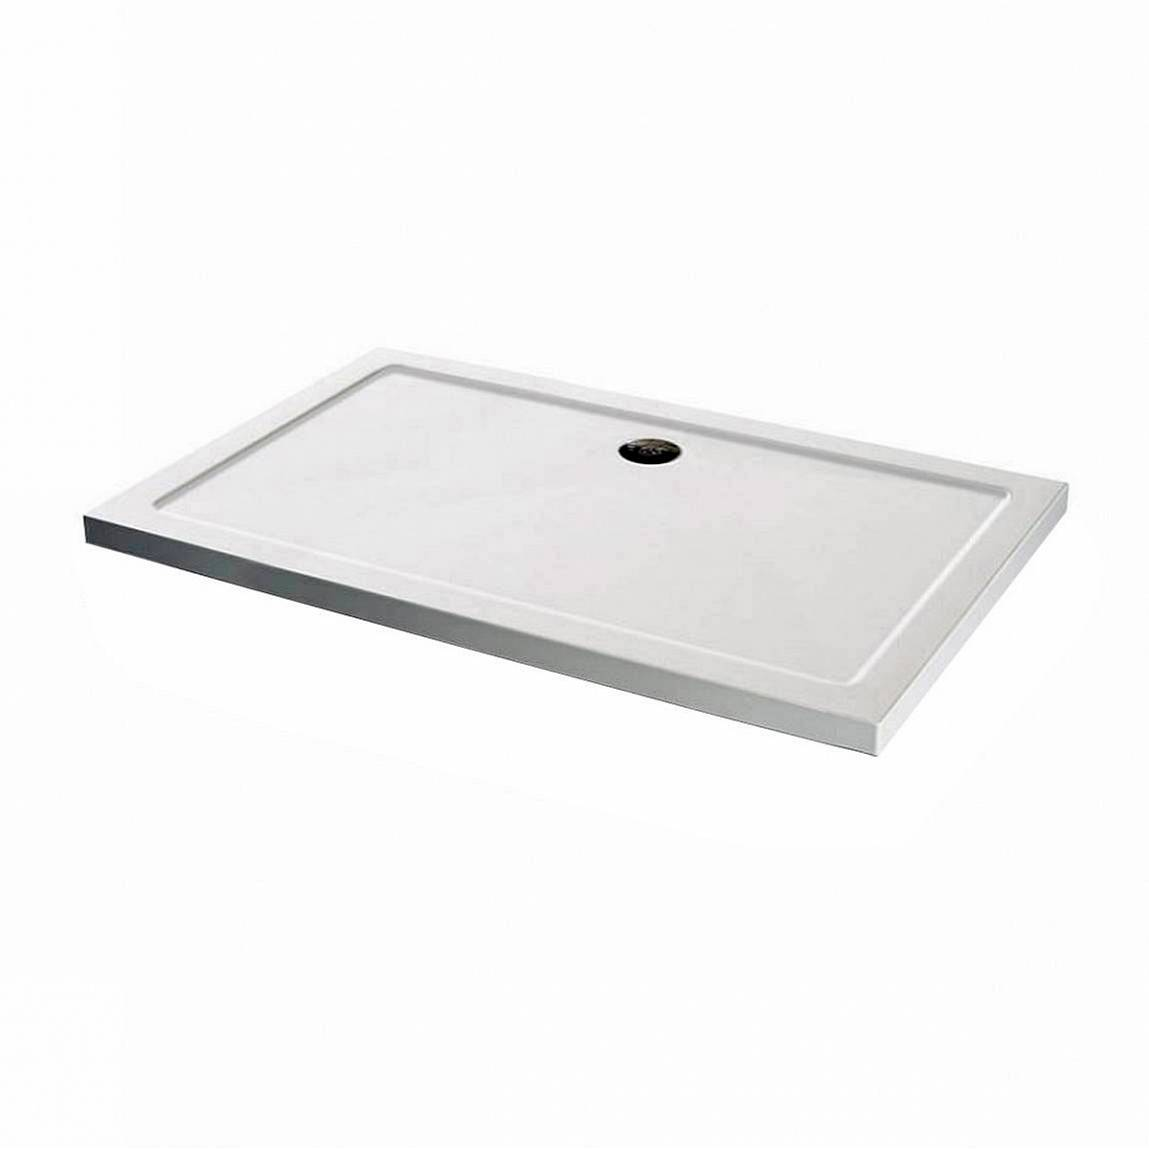 Image of Rectangular Stone Shower Tray 1600 x 800